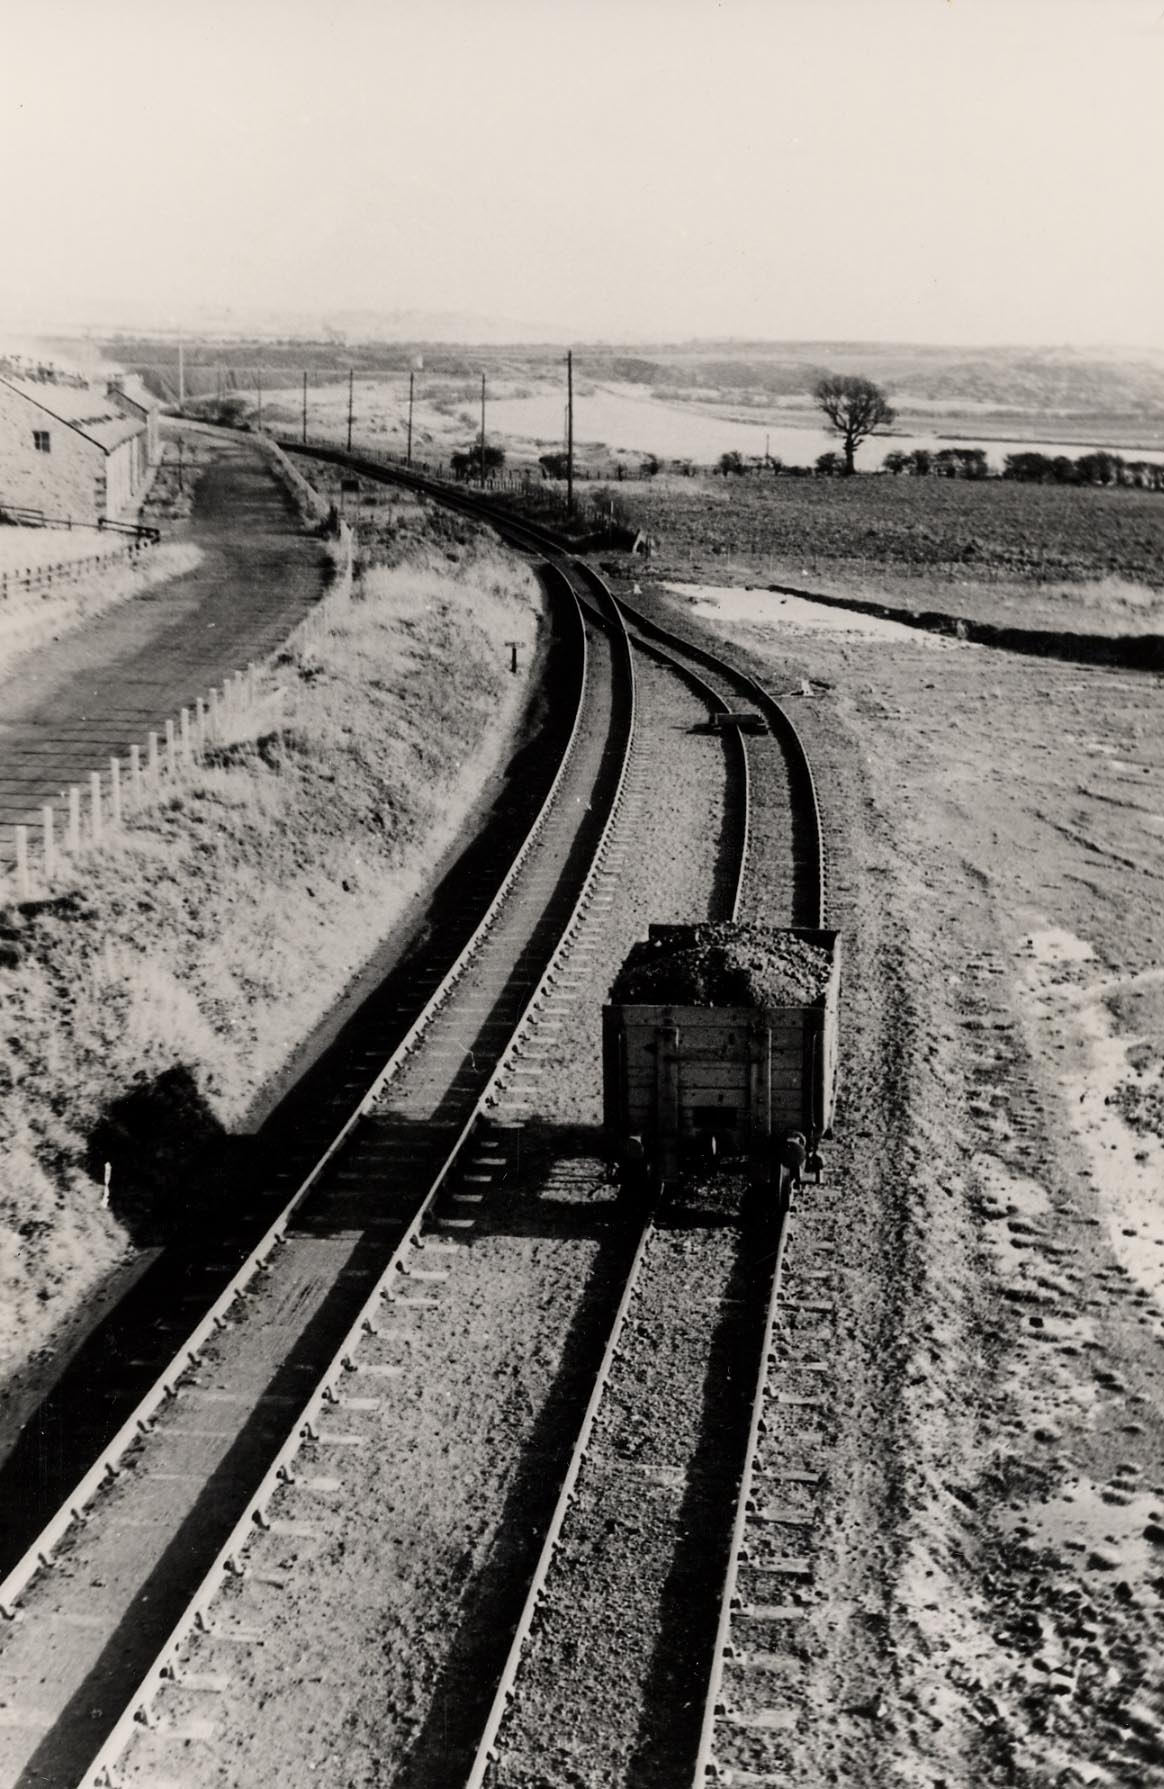 Main line between Byermoor and Marley Hill